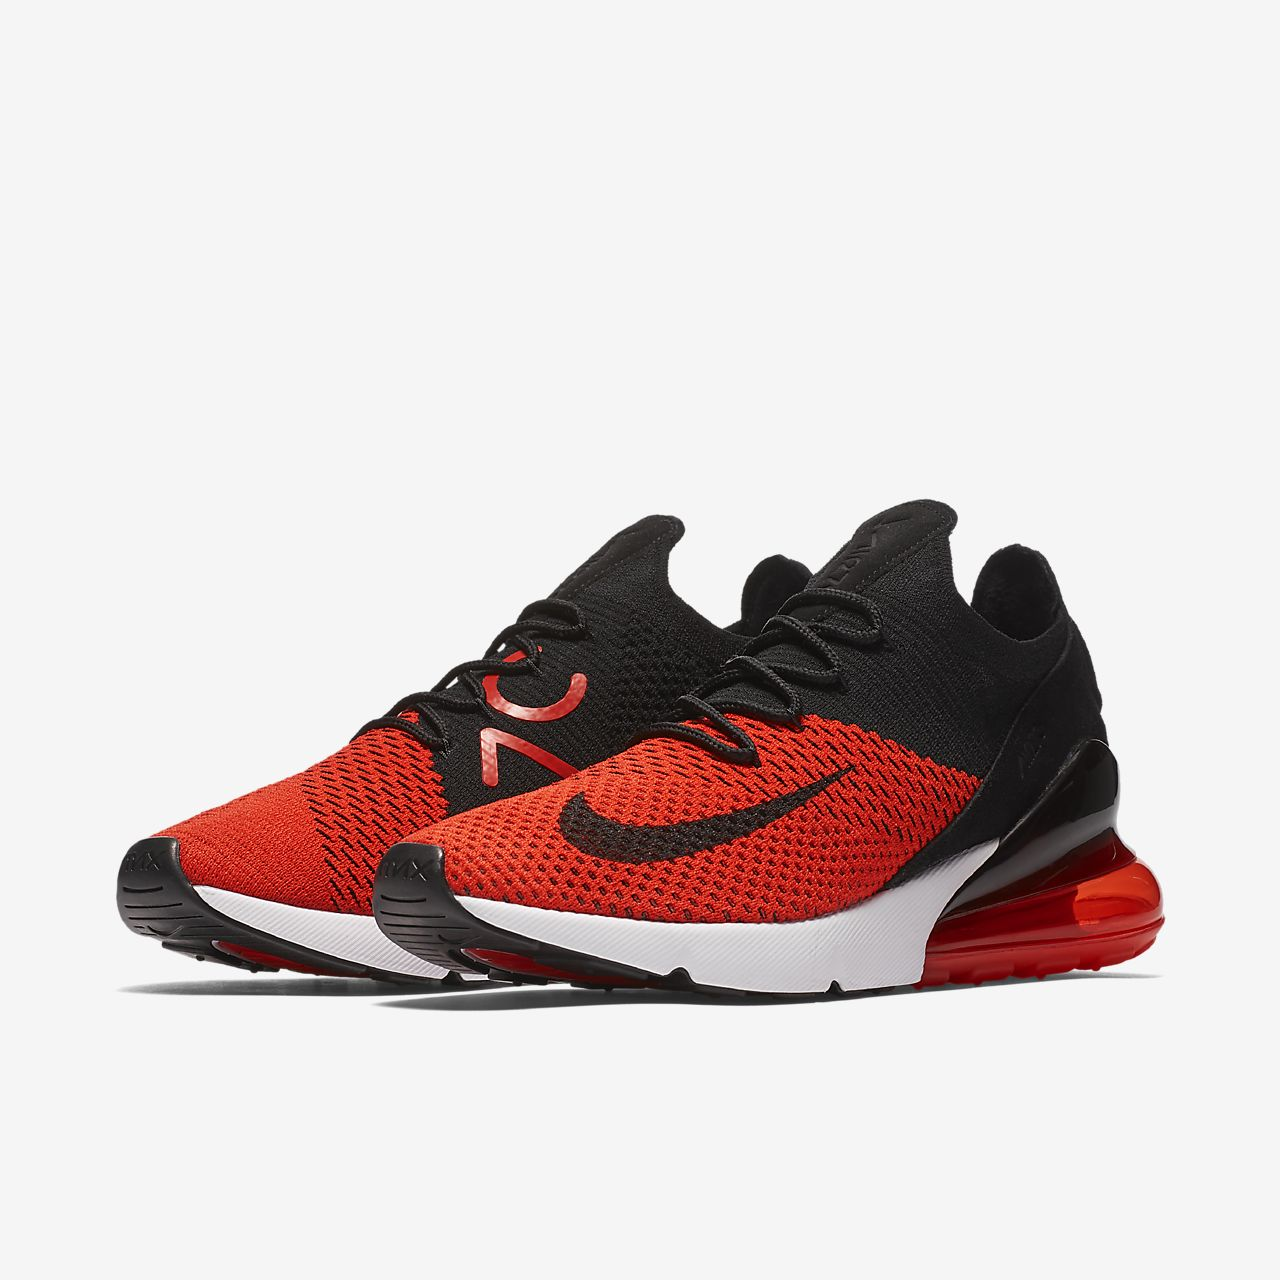 7af2343535d Nike Air Max 270 Flyknit Men s Shoe. Nike.com